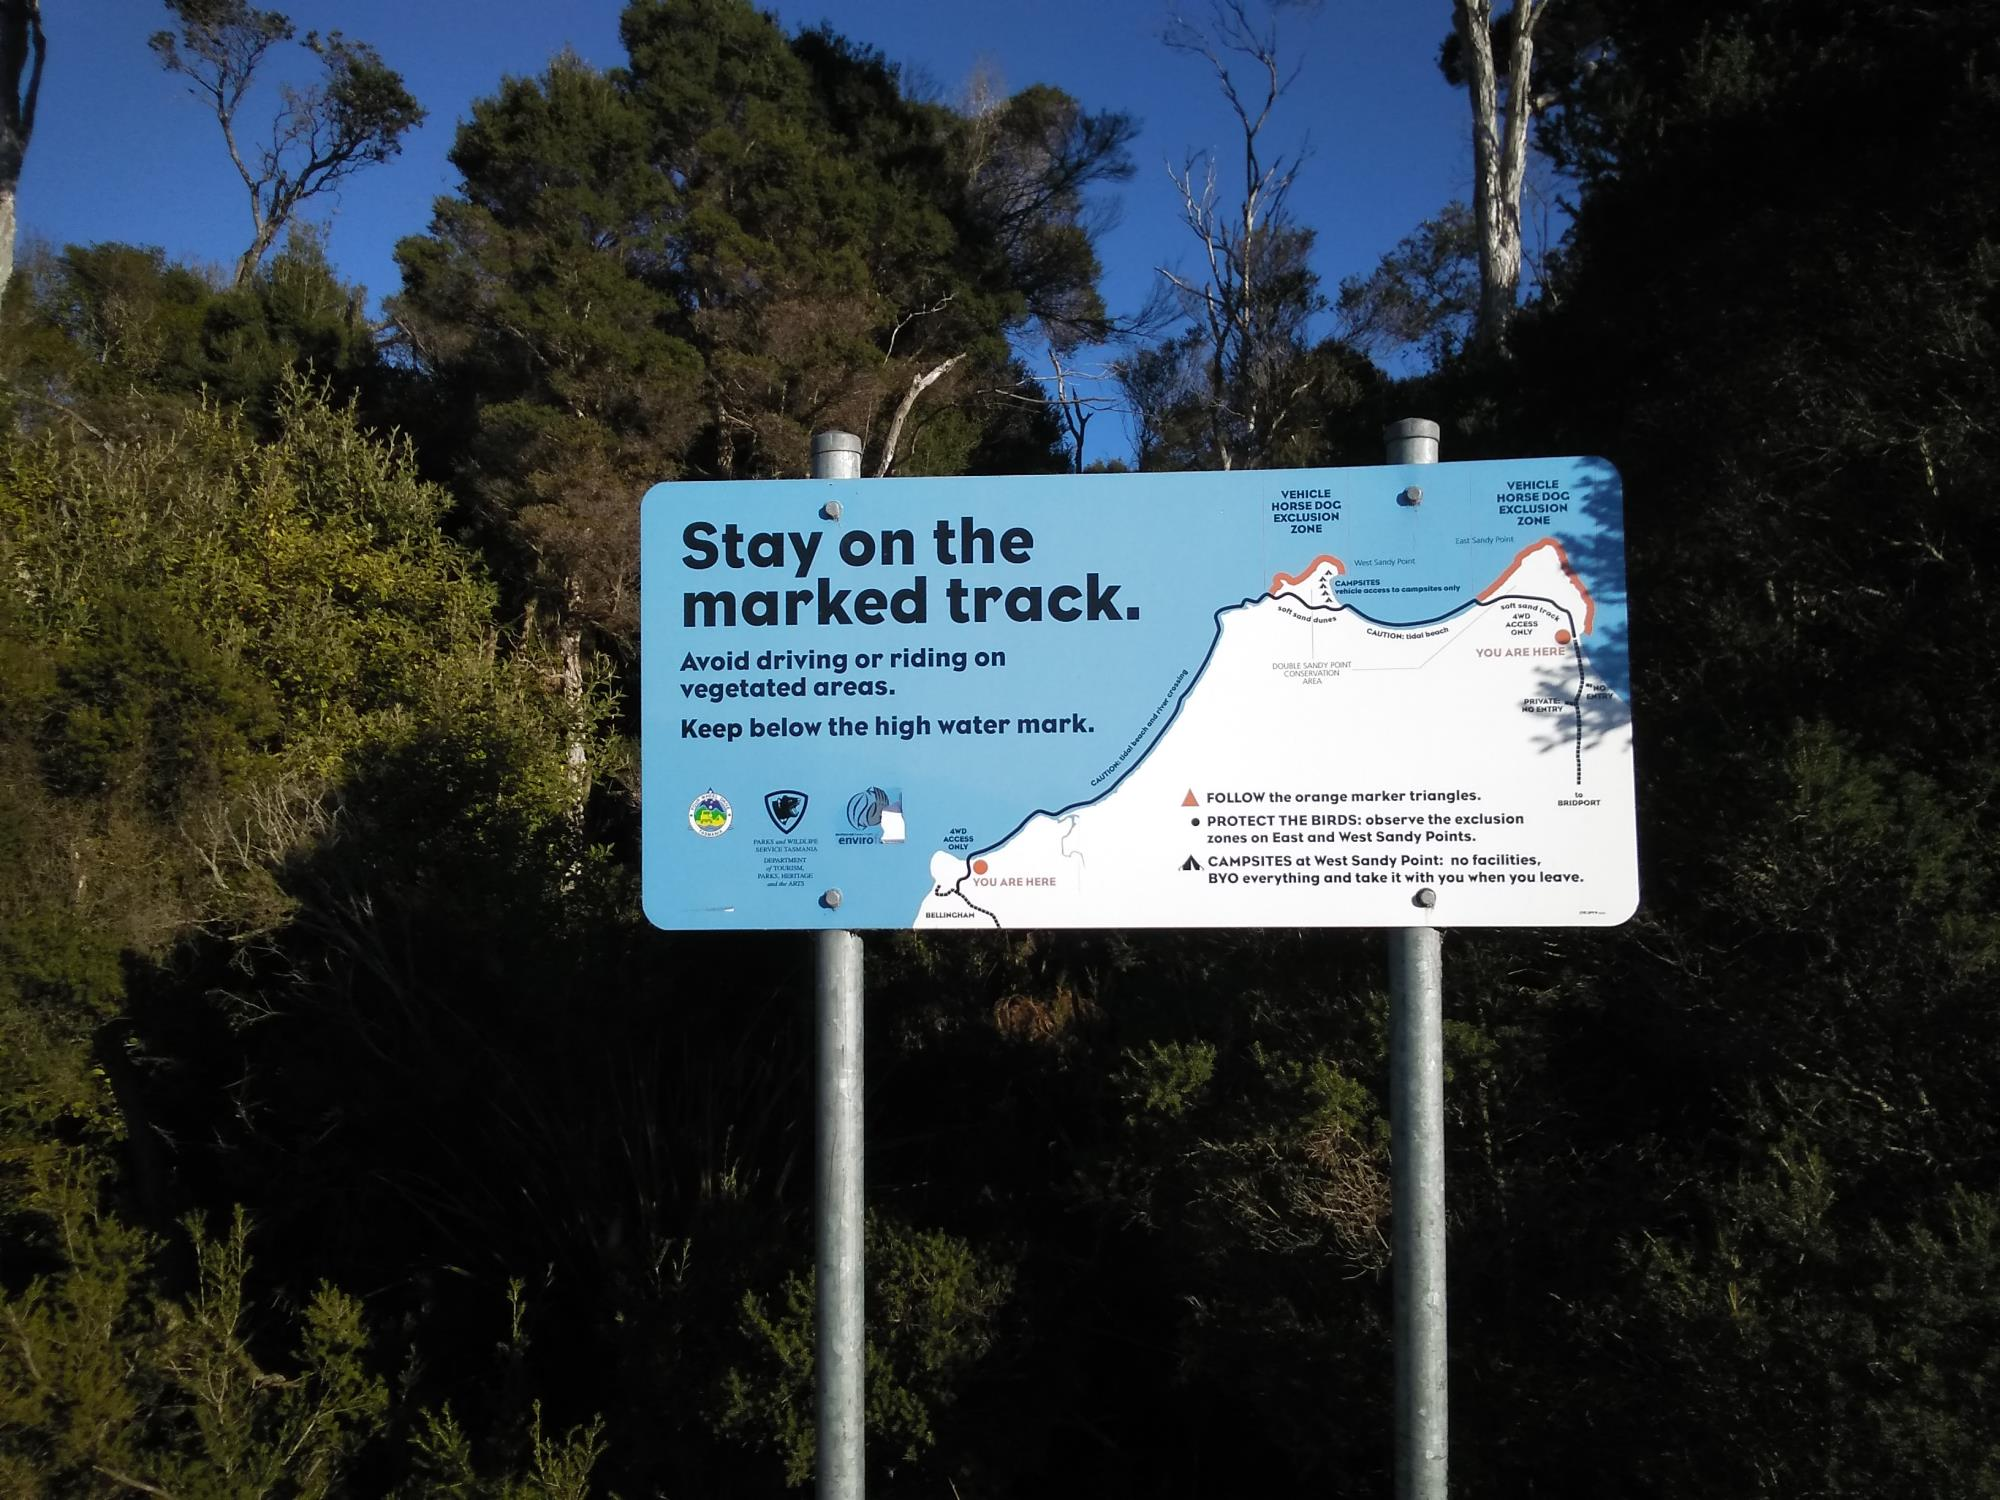 Bridport to Bellingham 4WD traverse sign with basic map and stay on marked track message